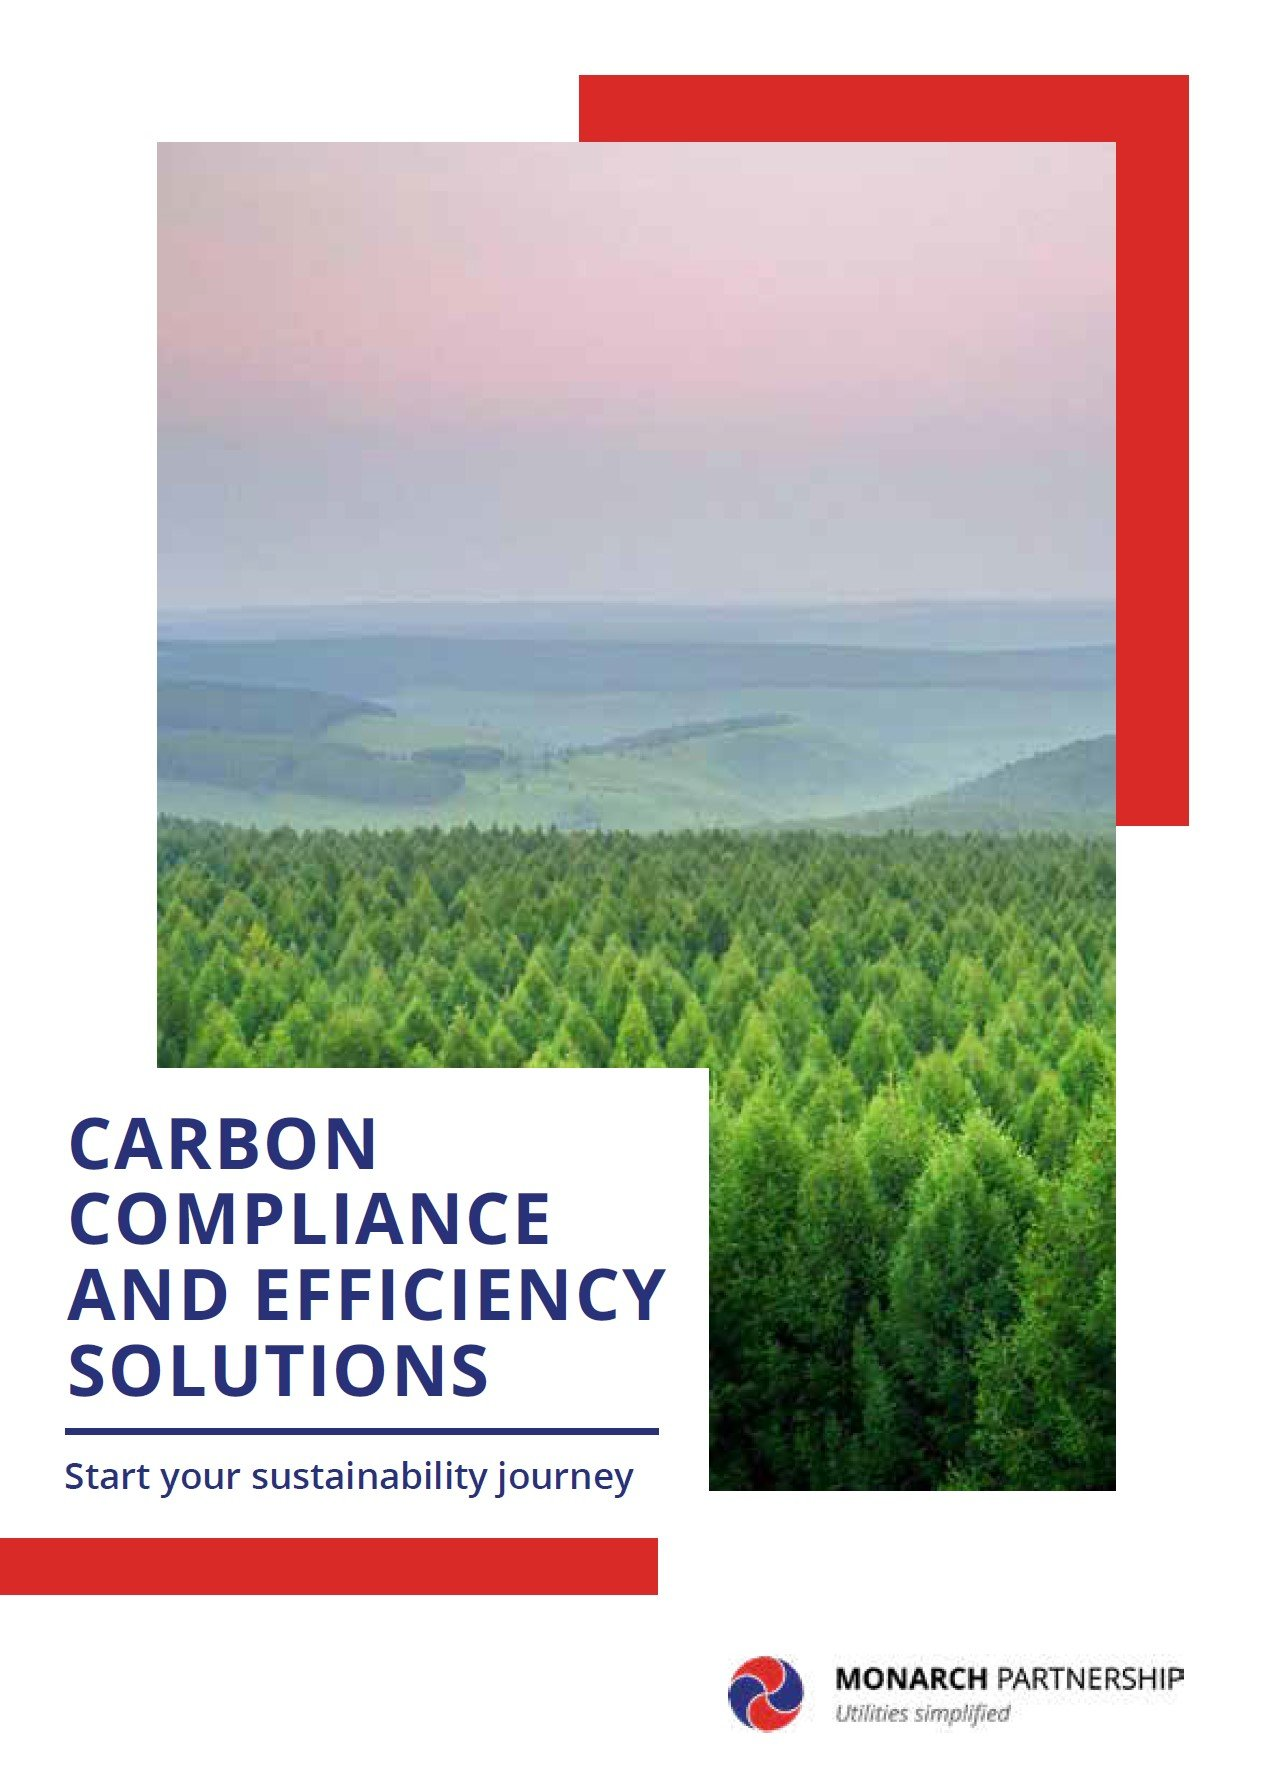 Carbon compliance and efficiency solutions